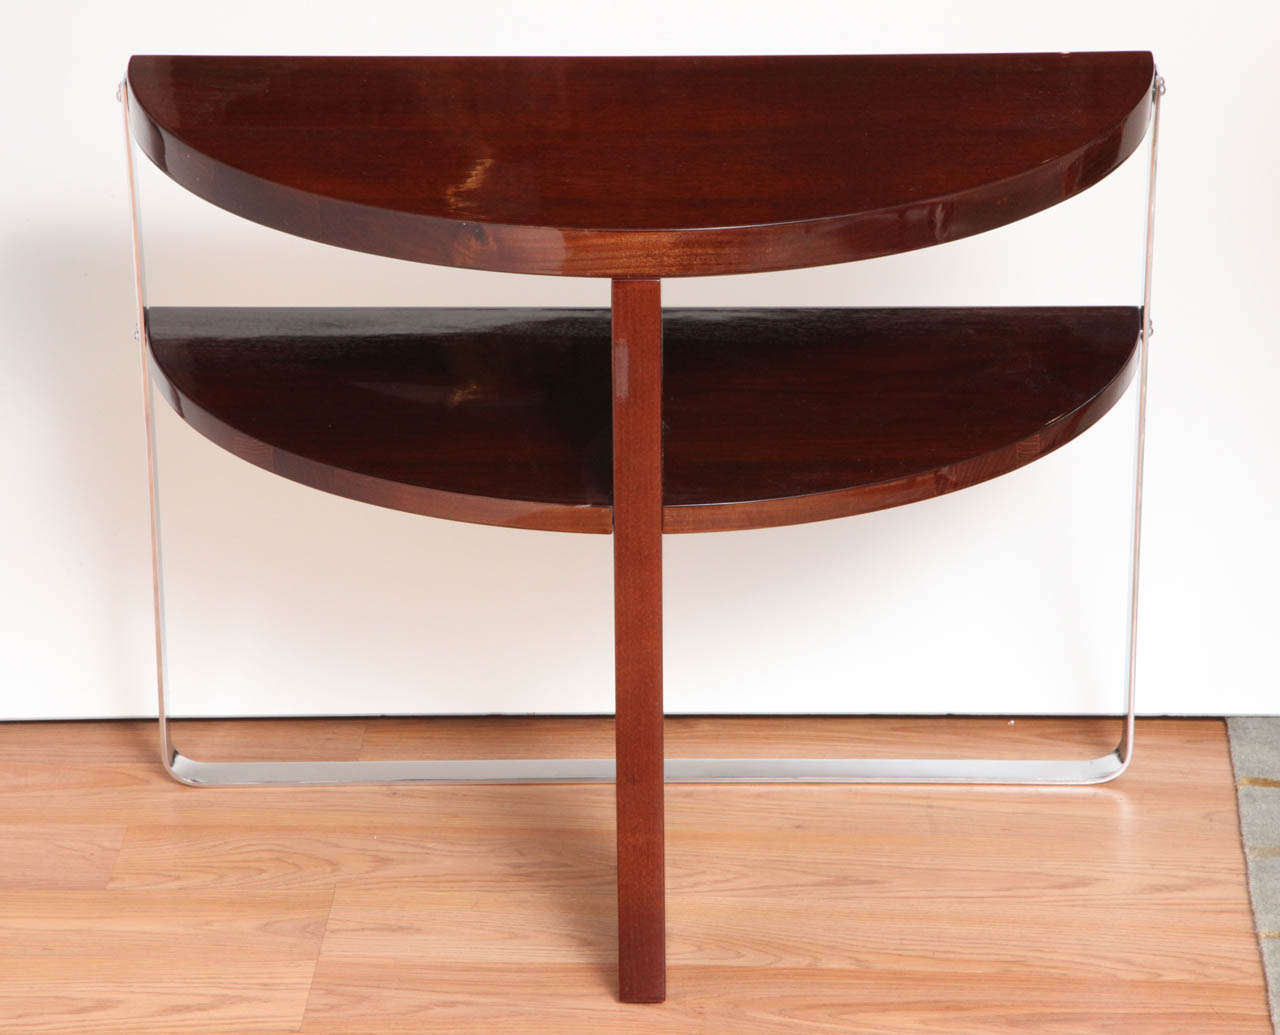 Pair of Machine Age Art Deco side tables in the style of Donald Deskey.